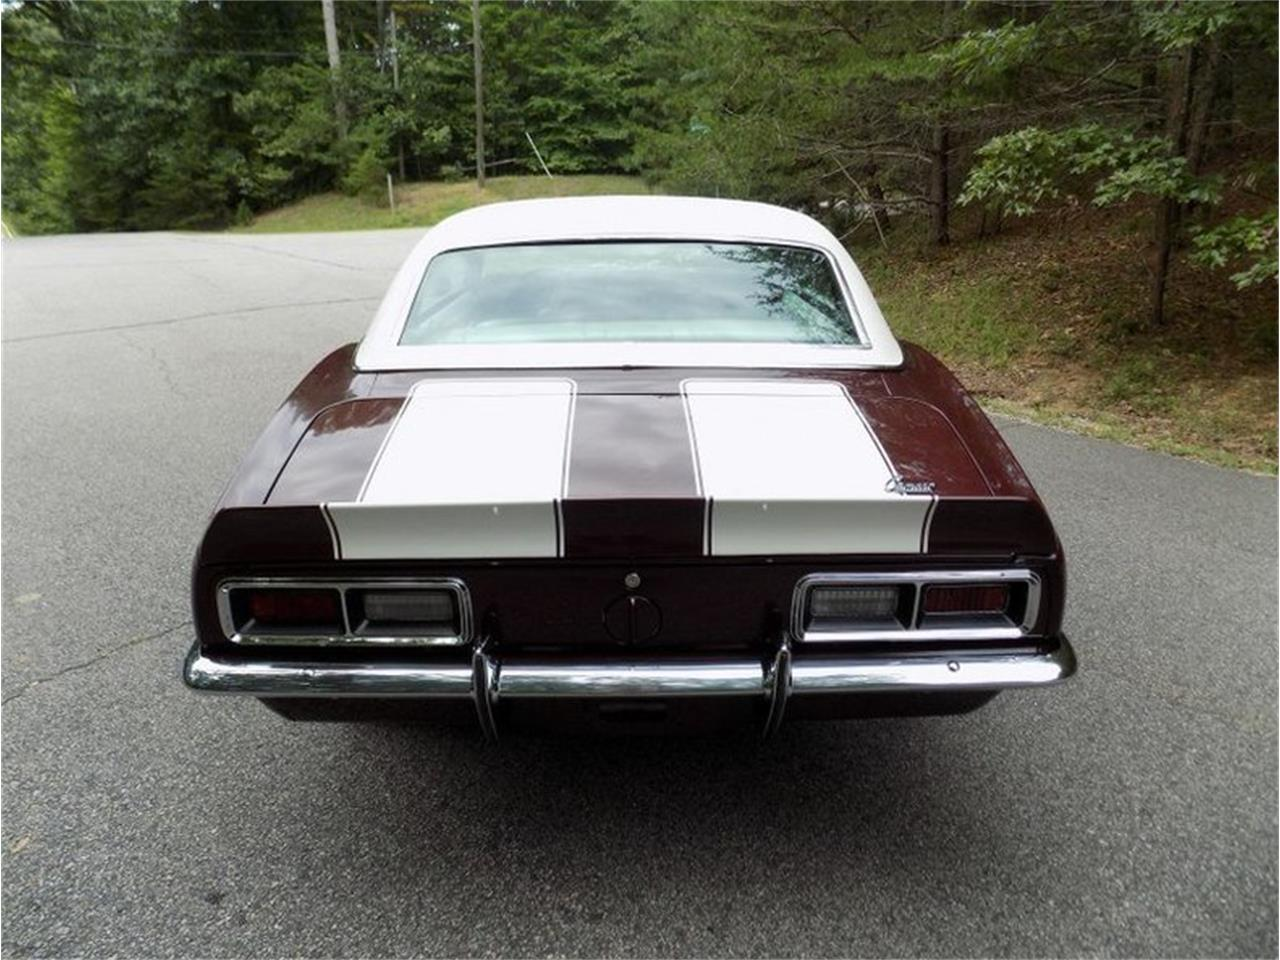 Large Picture of Classic 1968 Camaro Z28 Auction Vehicle Offered by GAA Classic Cars Auctions - LV5M